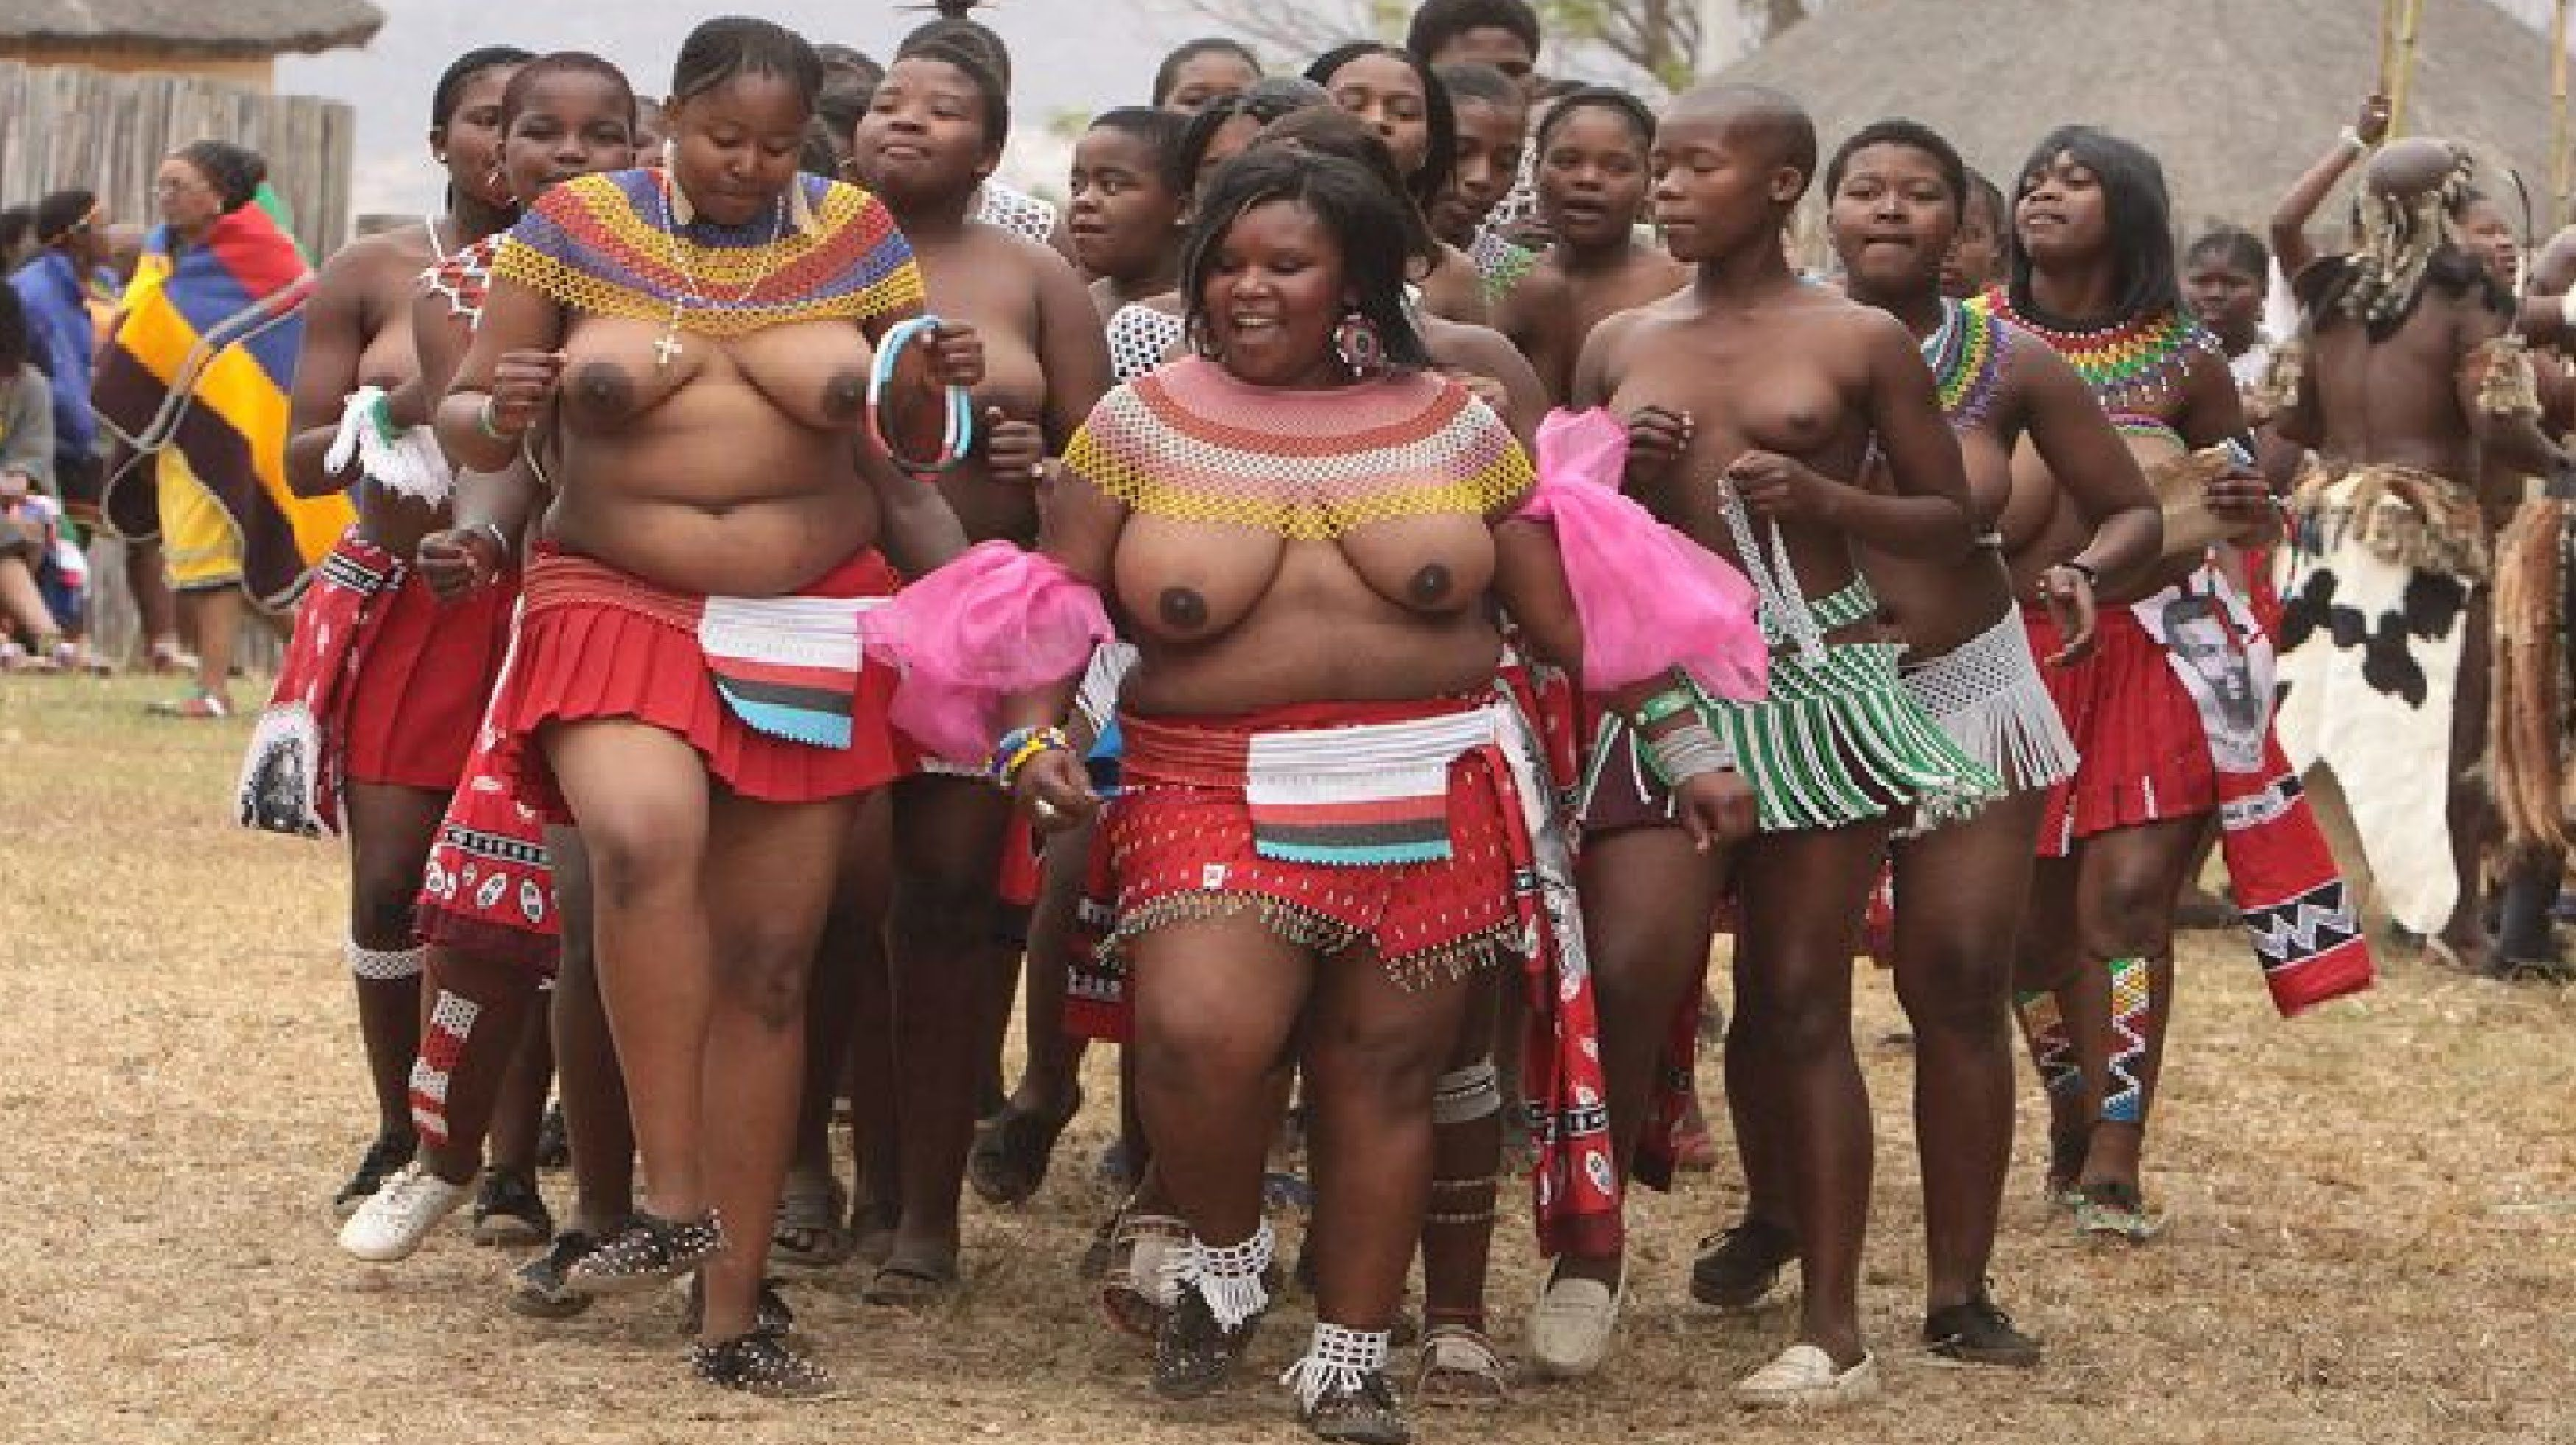 africa porn websites of zulu girls